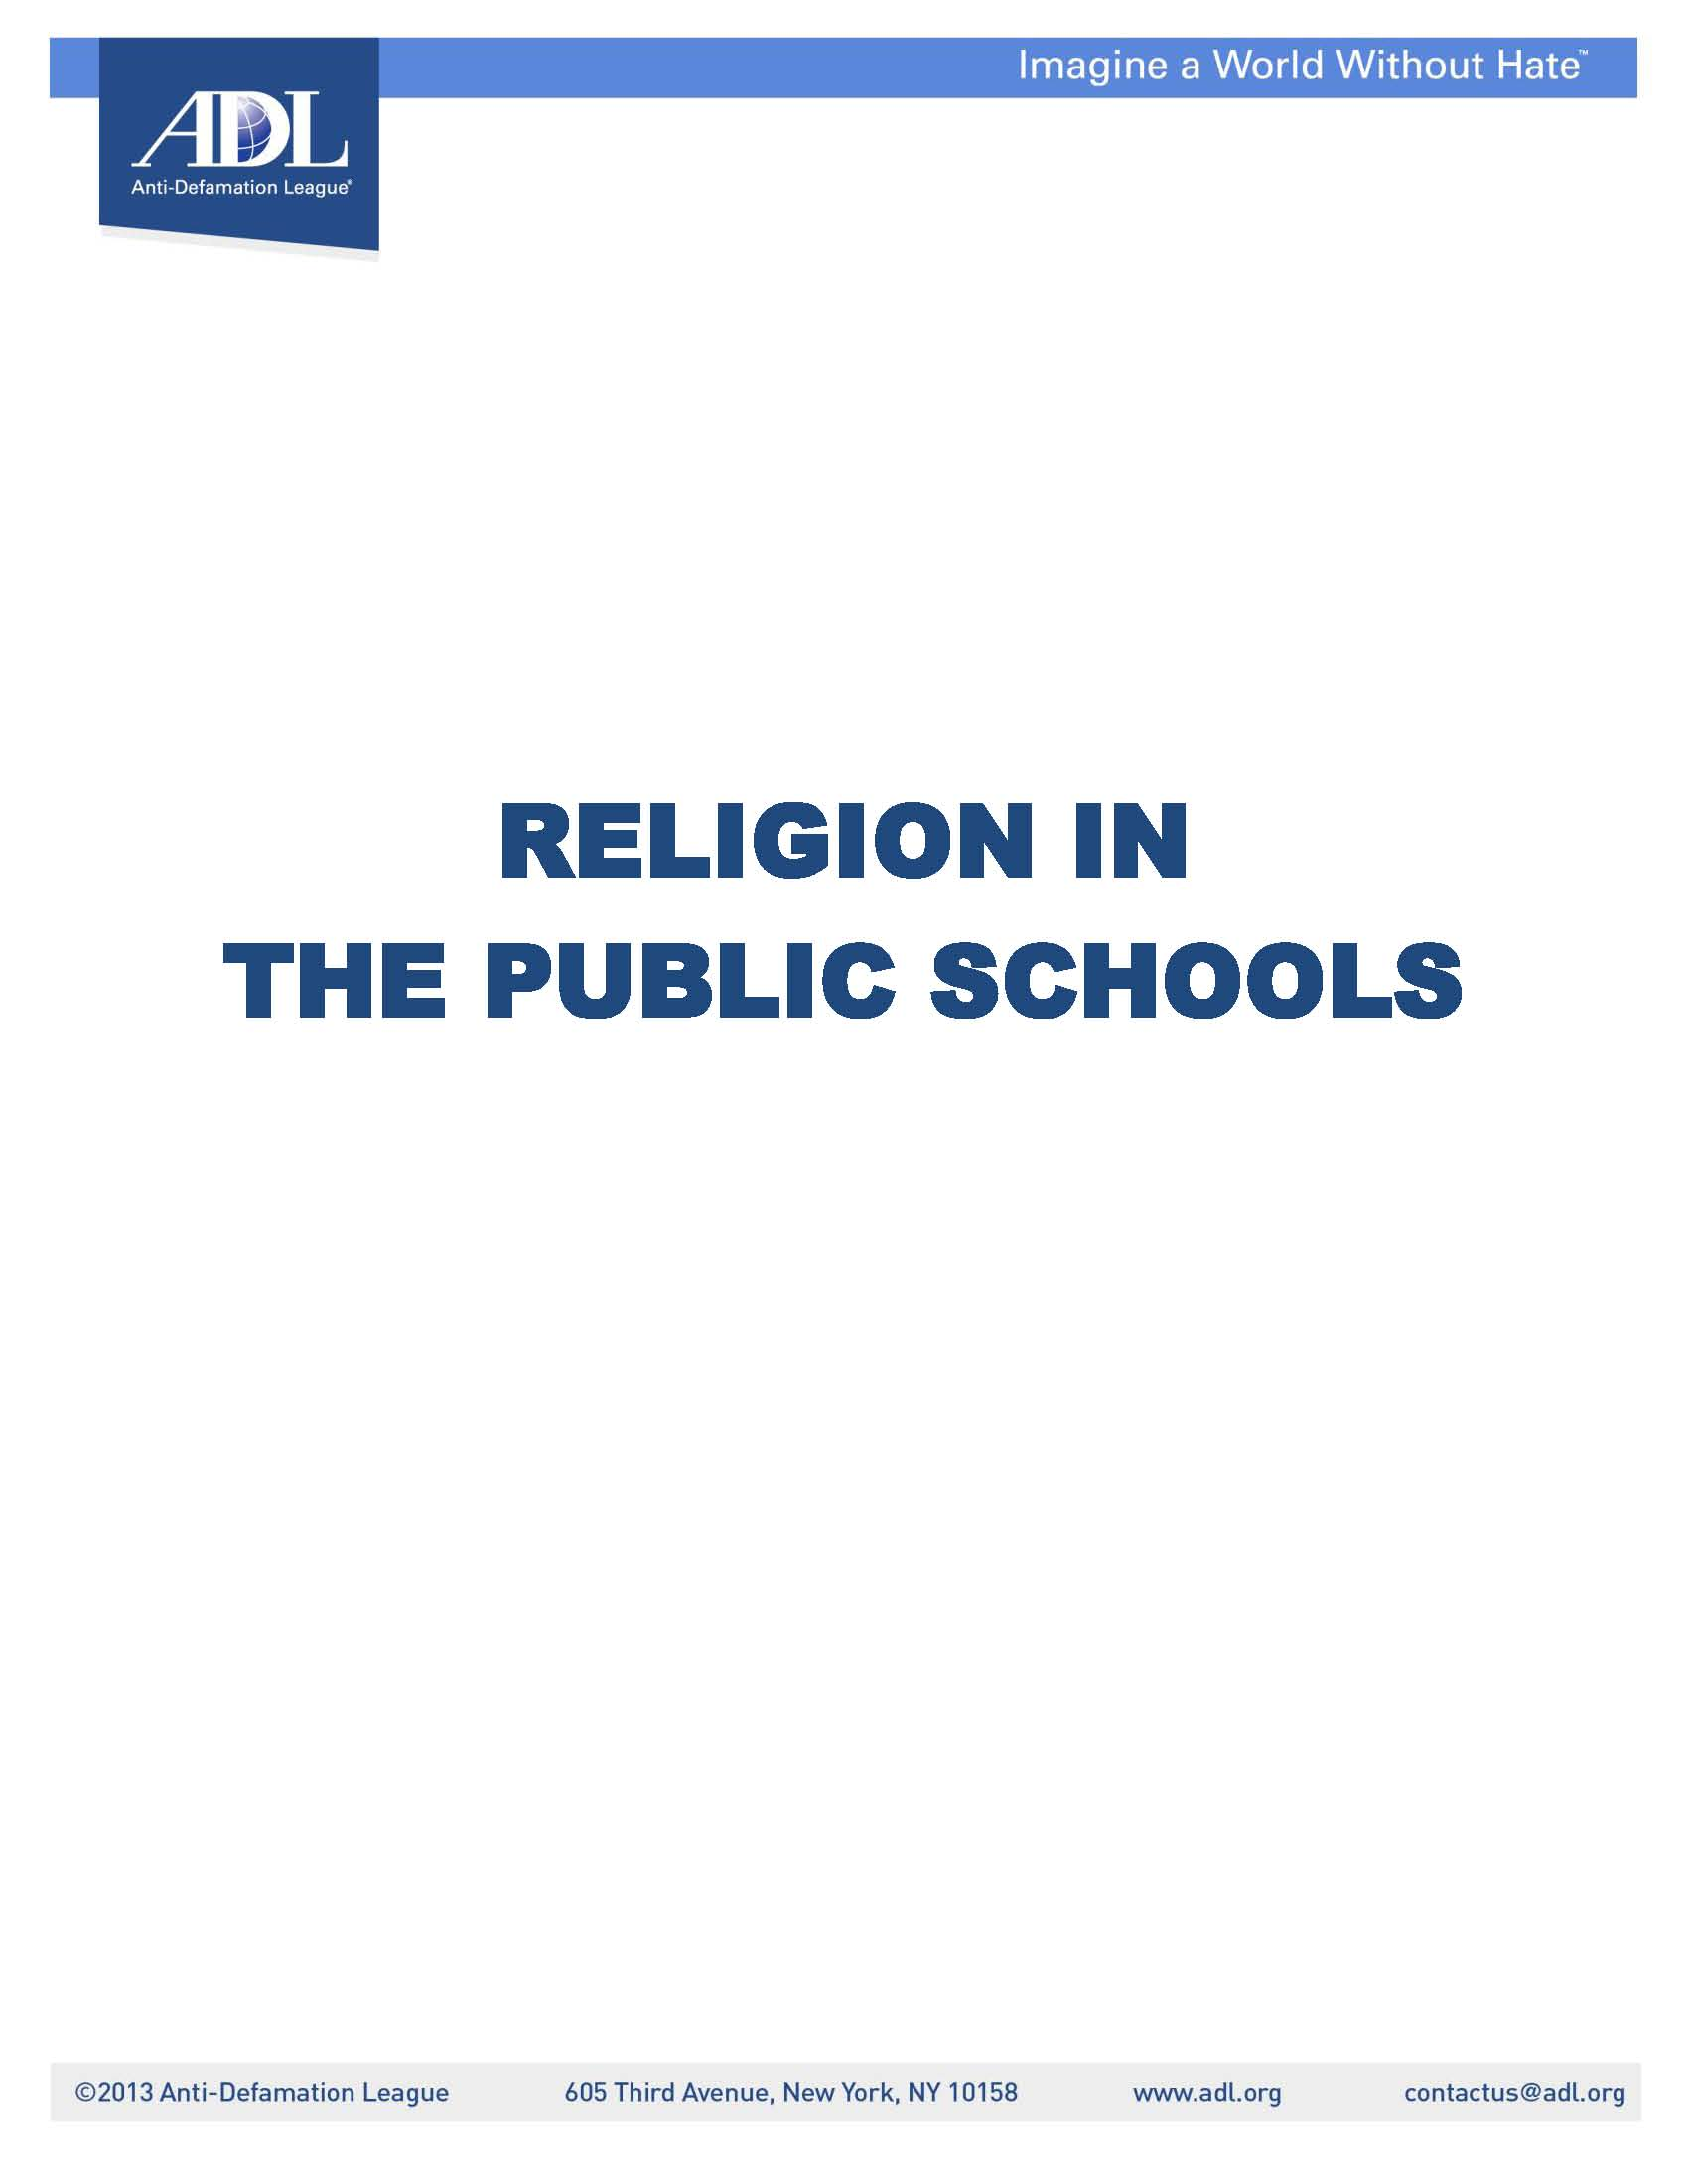 Religion in the Public Schools THUMBNAIL